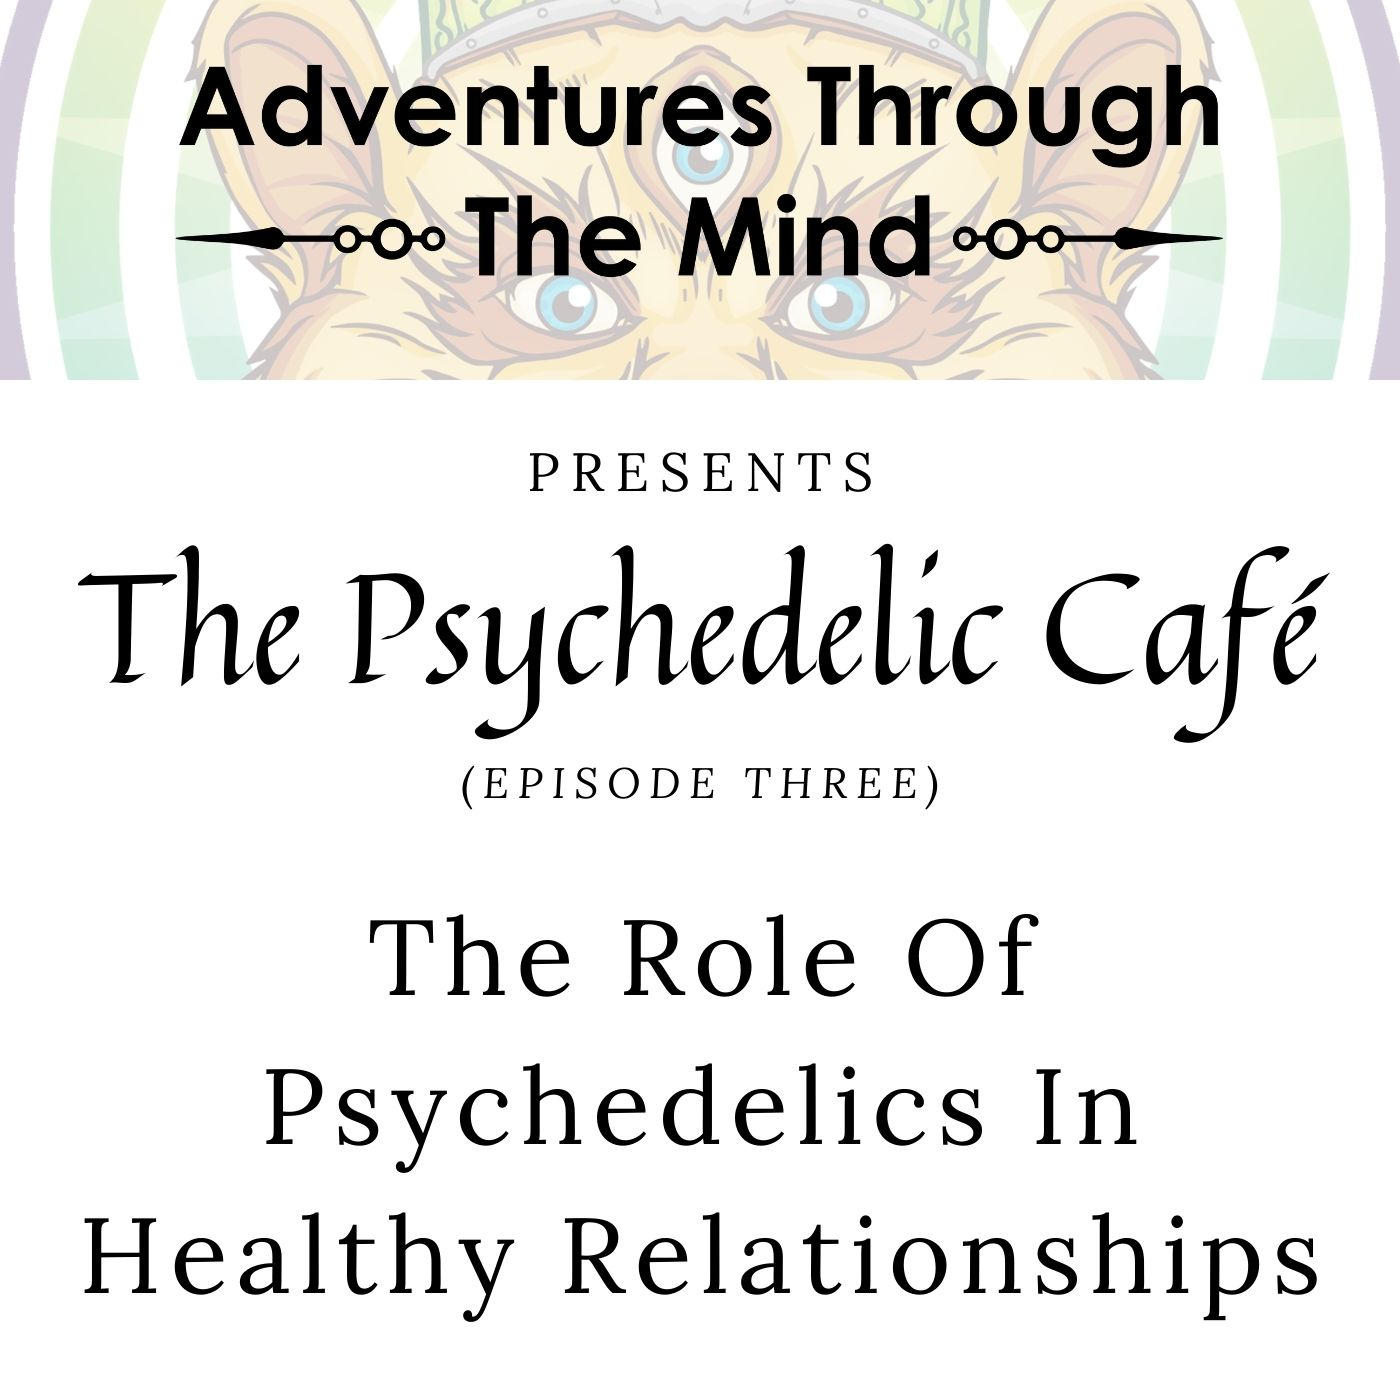 The Role Of Psychedelics In Healthy Relationships | Psychedelic Café 3